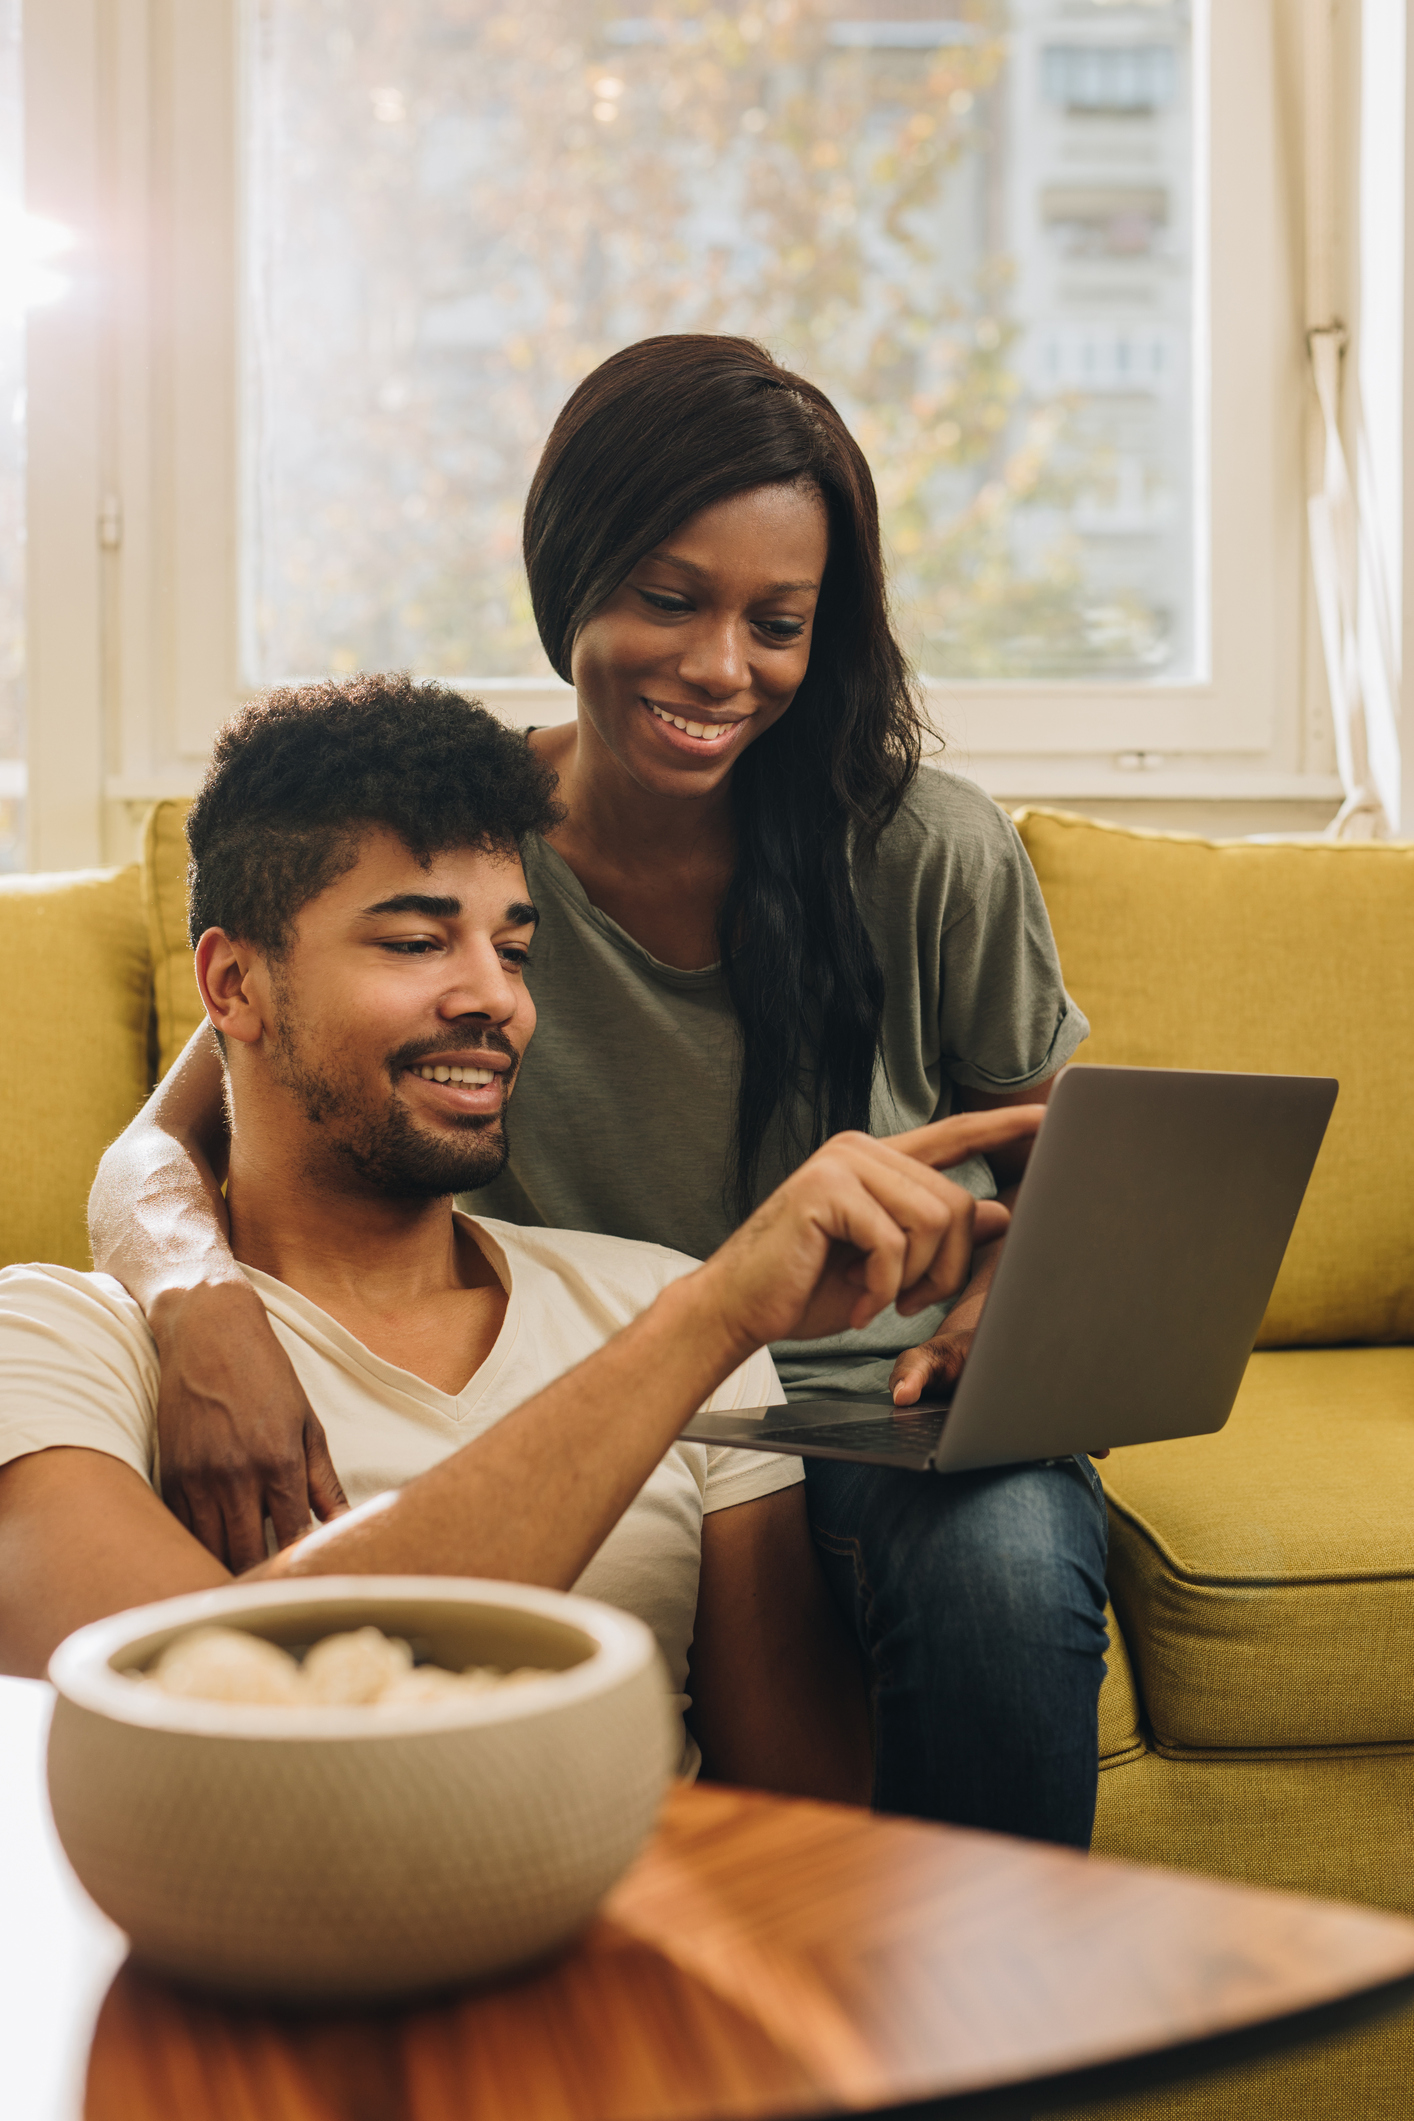 Happy African American couple surfing the net on laptop at home.